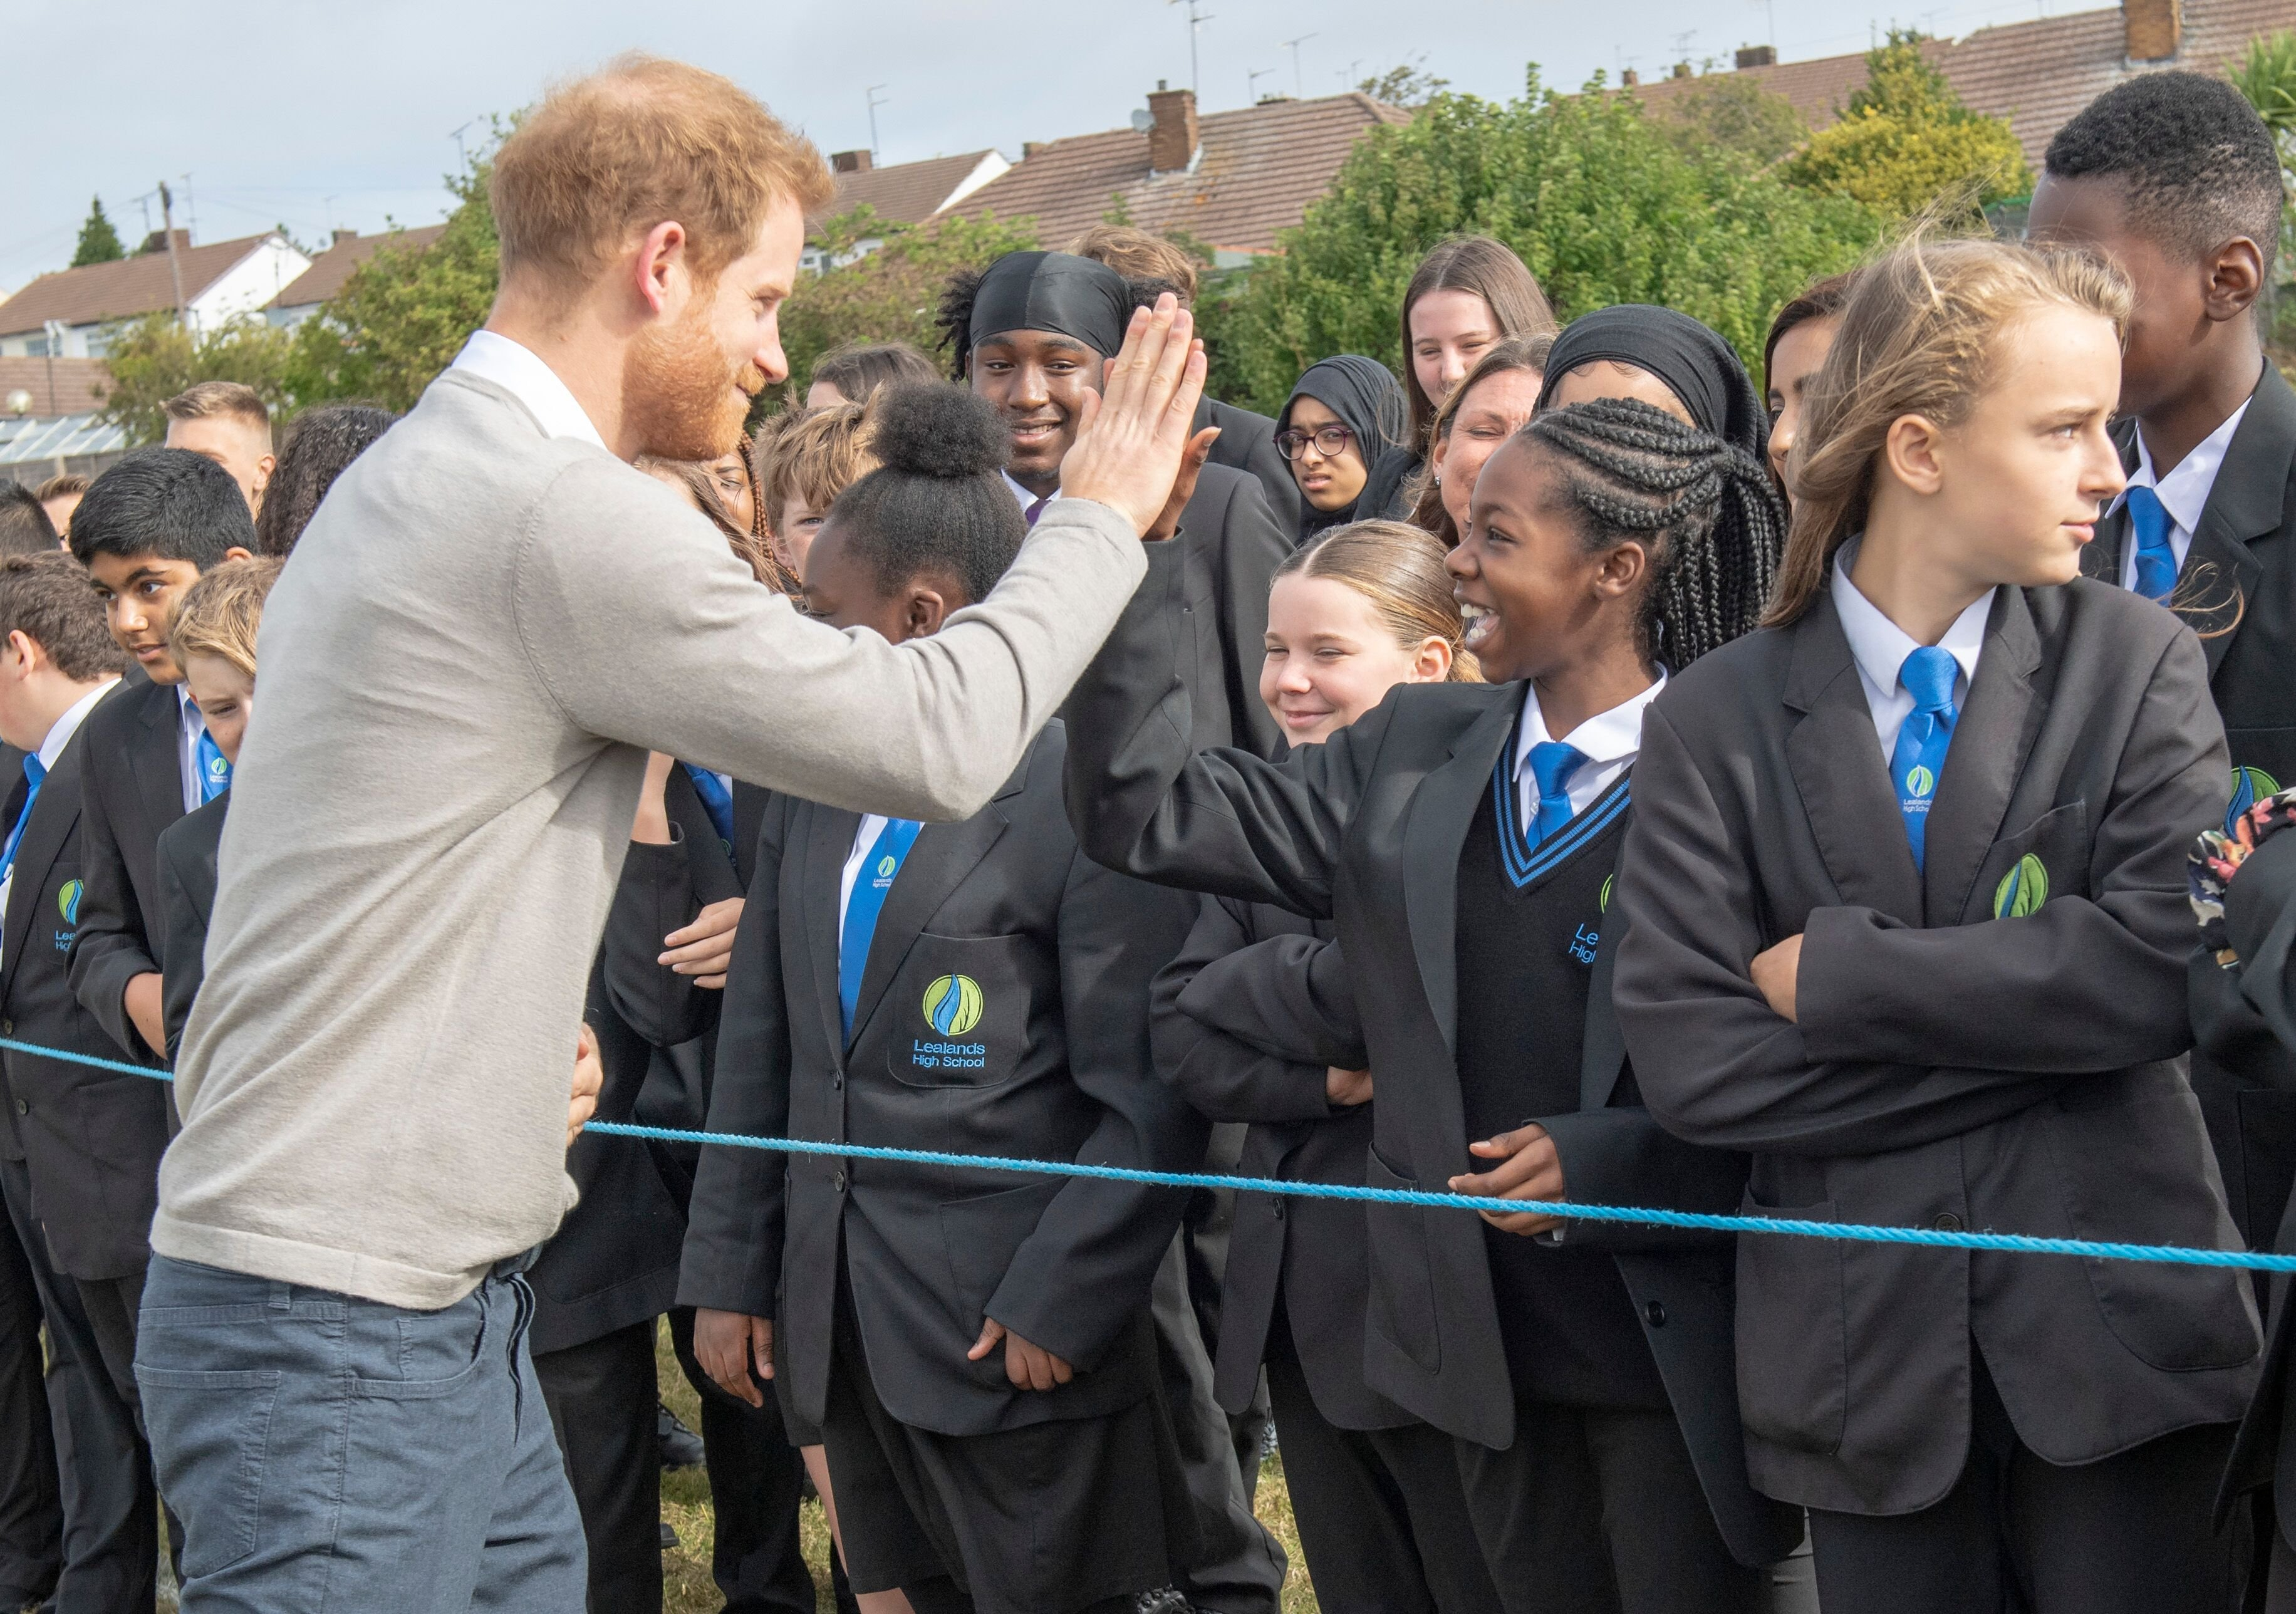 Prince Harry meets pupils during his visit to The Rugby Football Union All Schools Programme. | Source: Getty Images